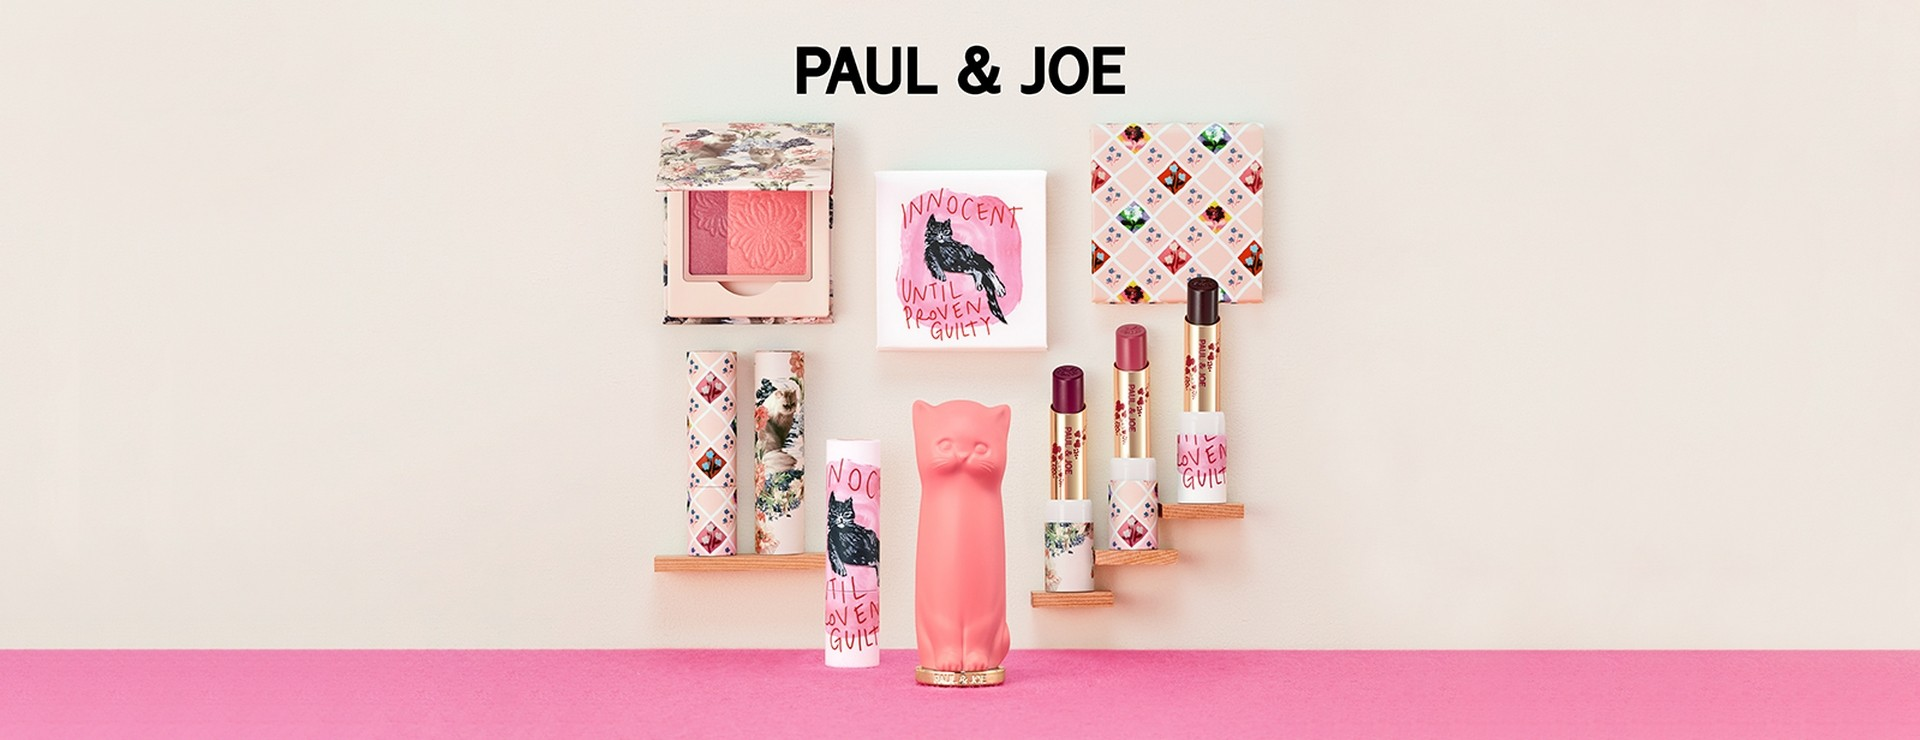 Paul & Joe Autumn 2019